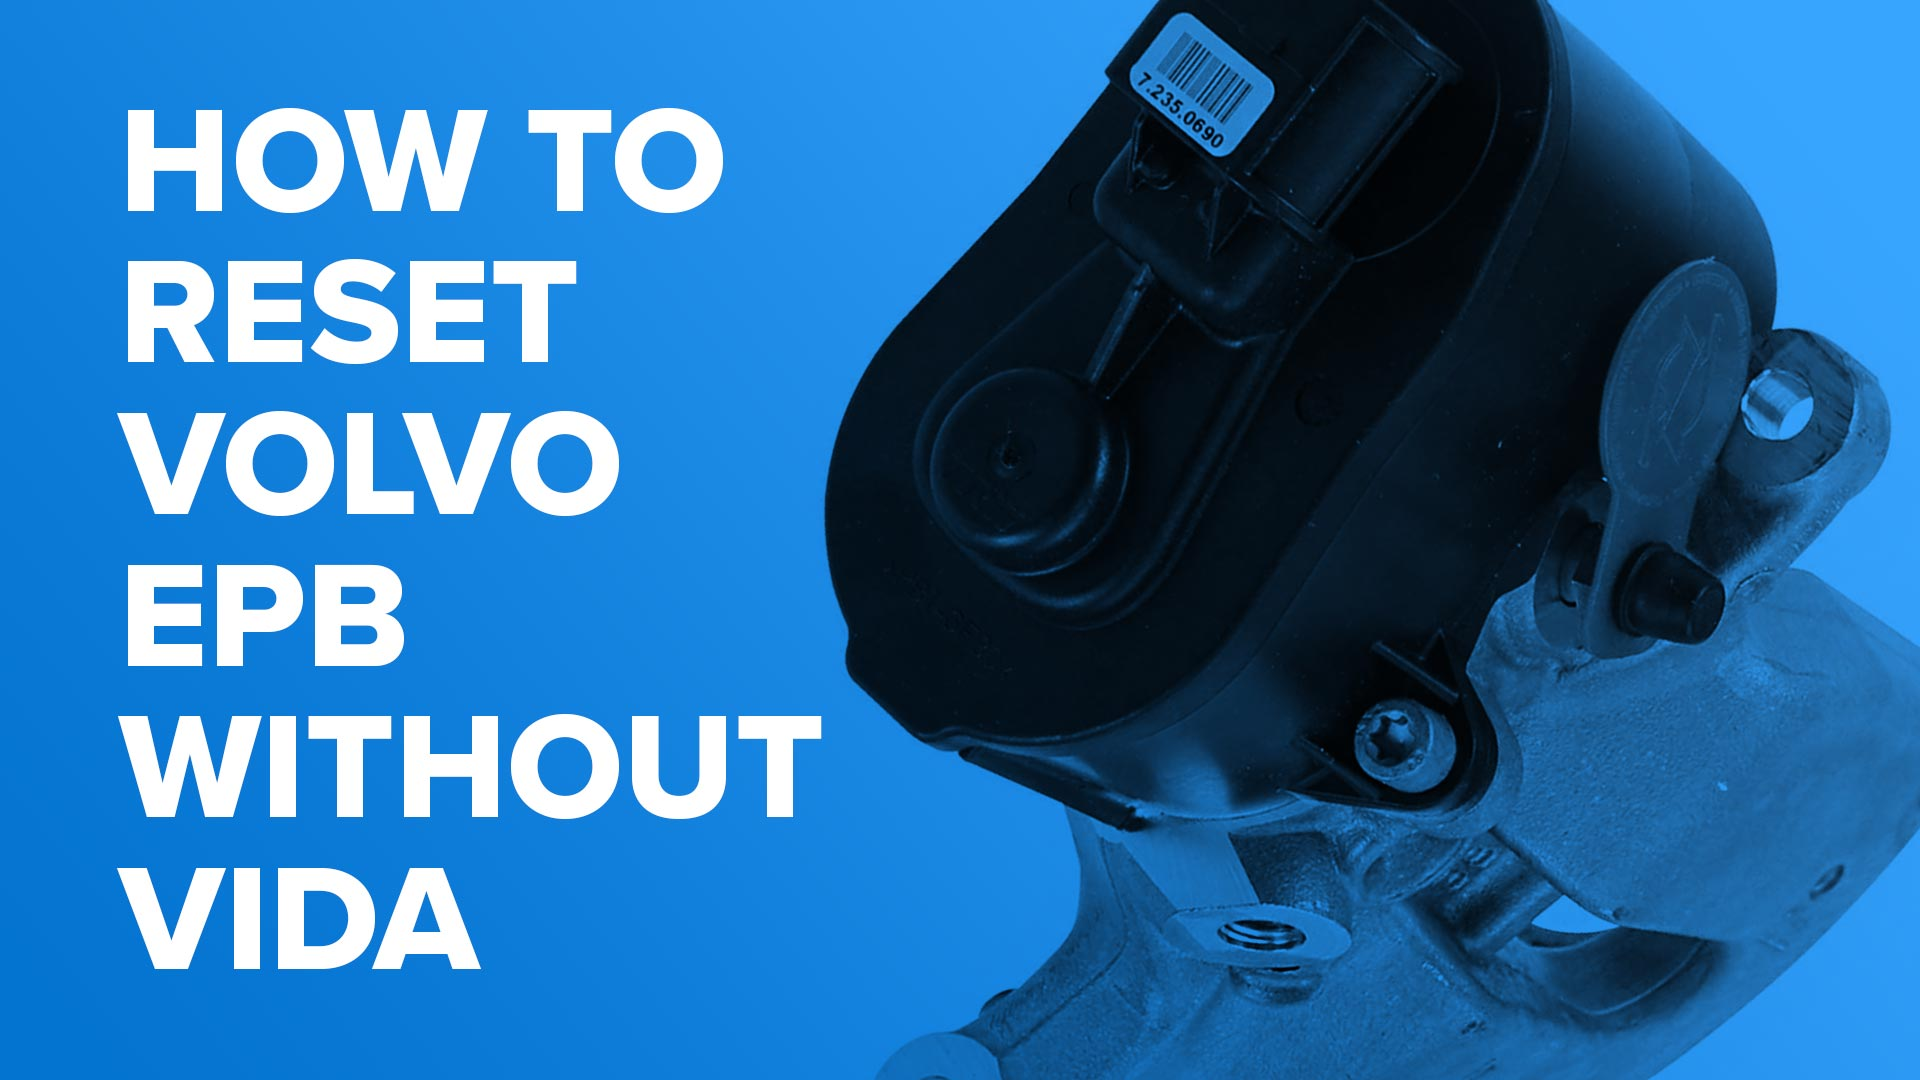 How To Reset A Volvo (P2 & P3) Electronic Parking Brake (EPB) Without VIDA